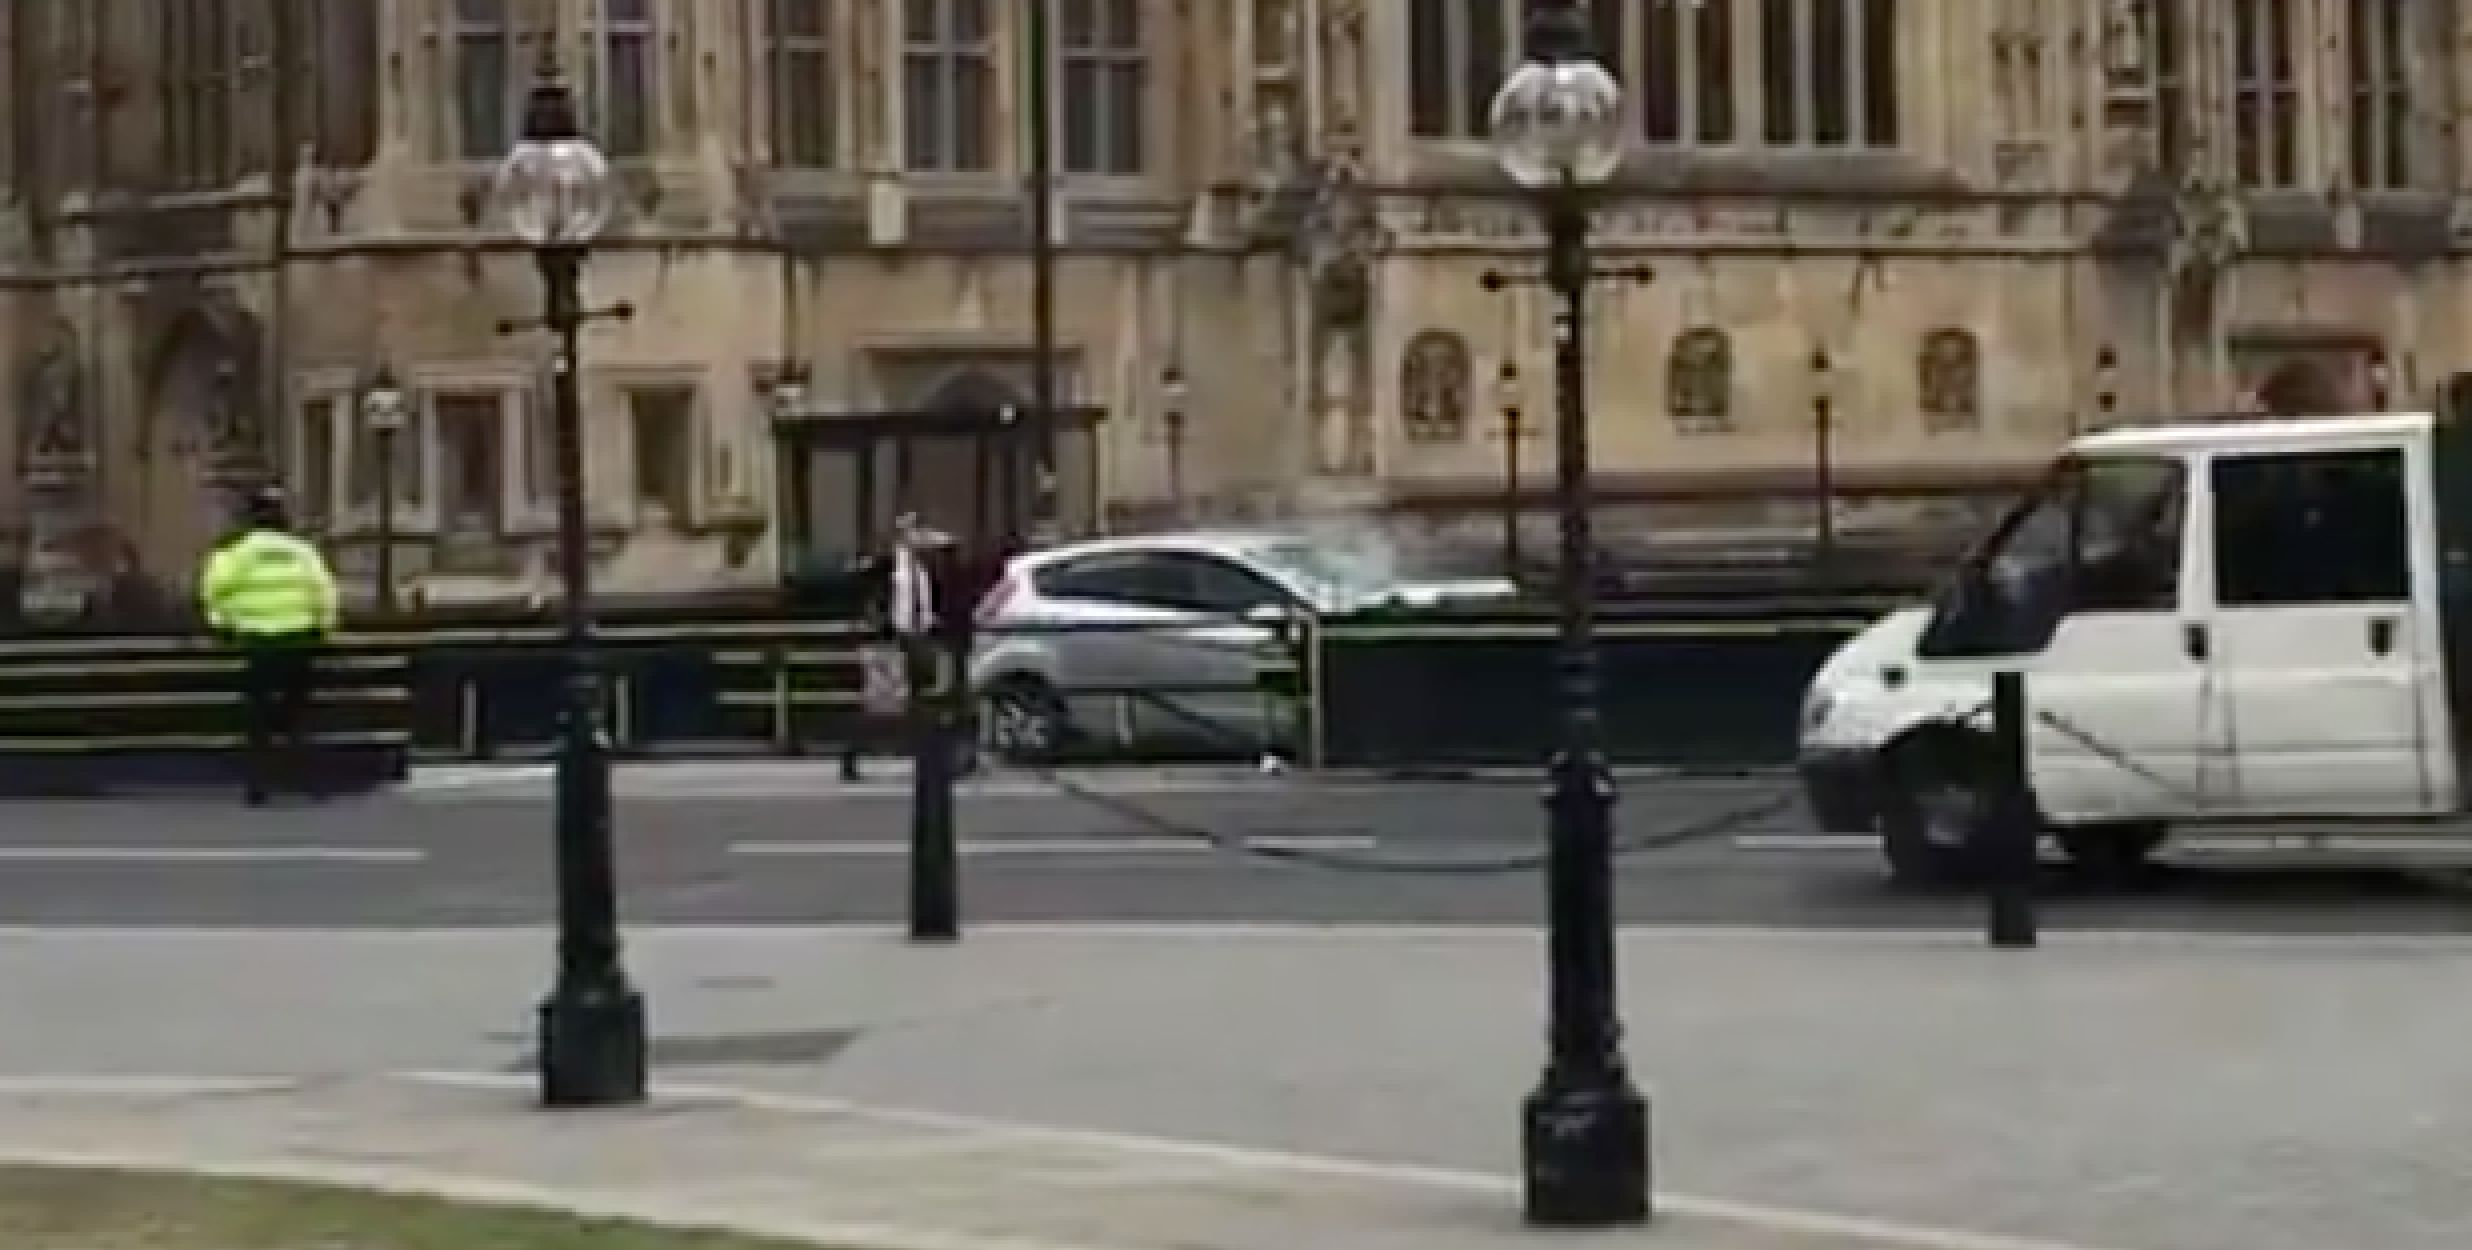 Auto  crashes into security barriers outside Houses of Parliament in London